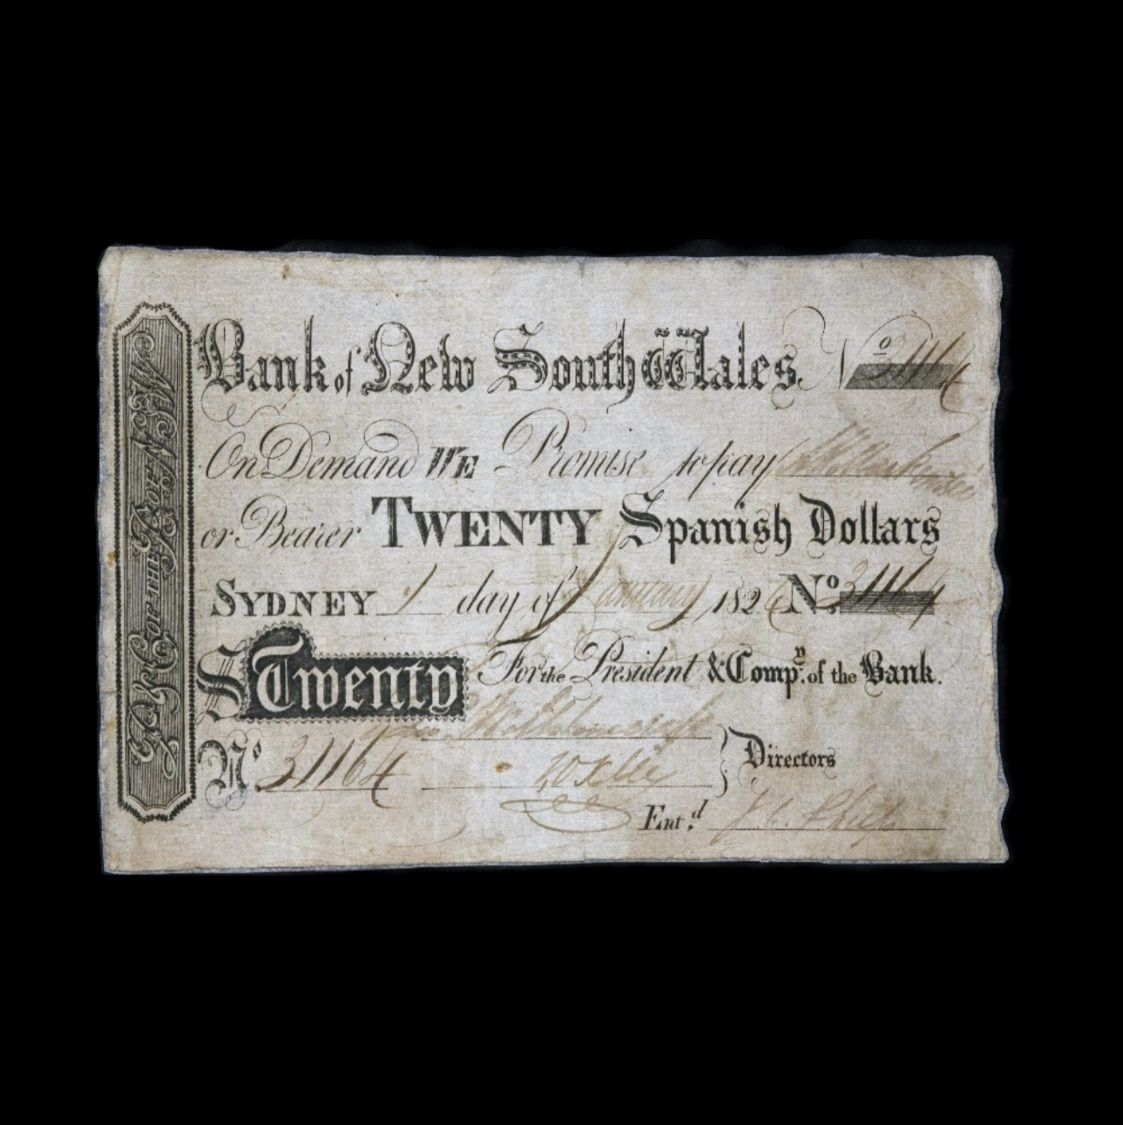 20 Spanish Dollars front view